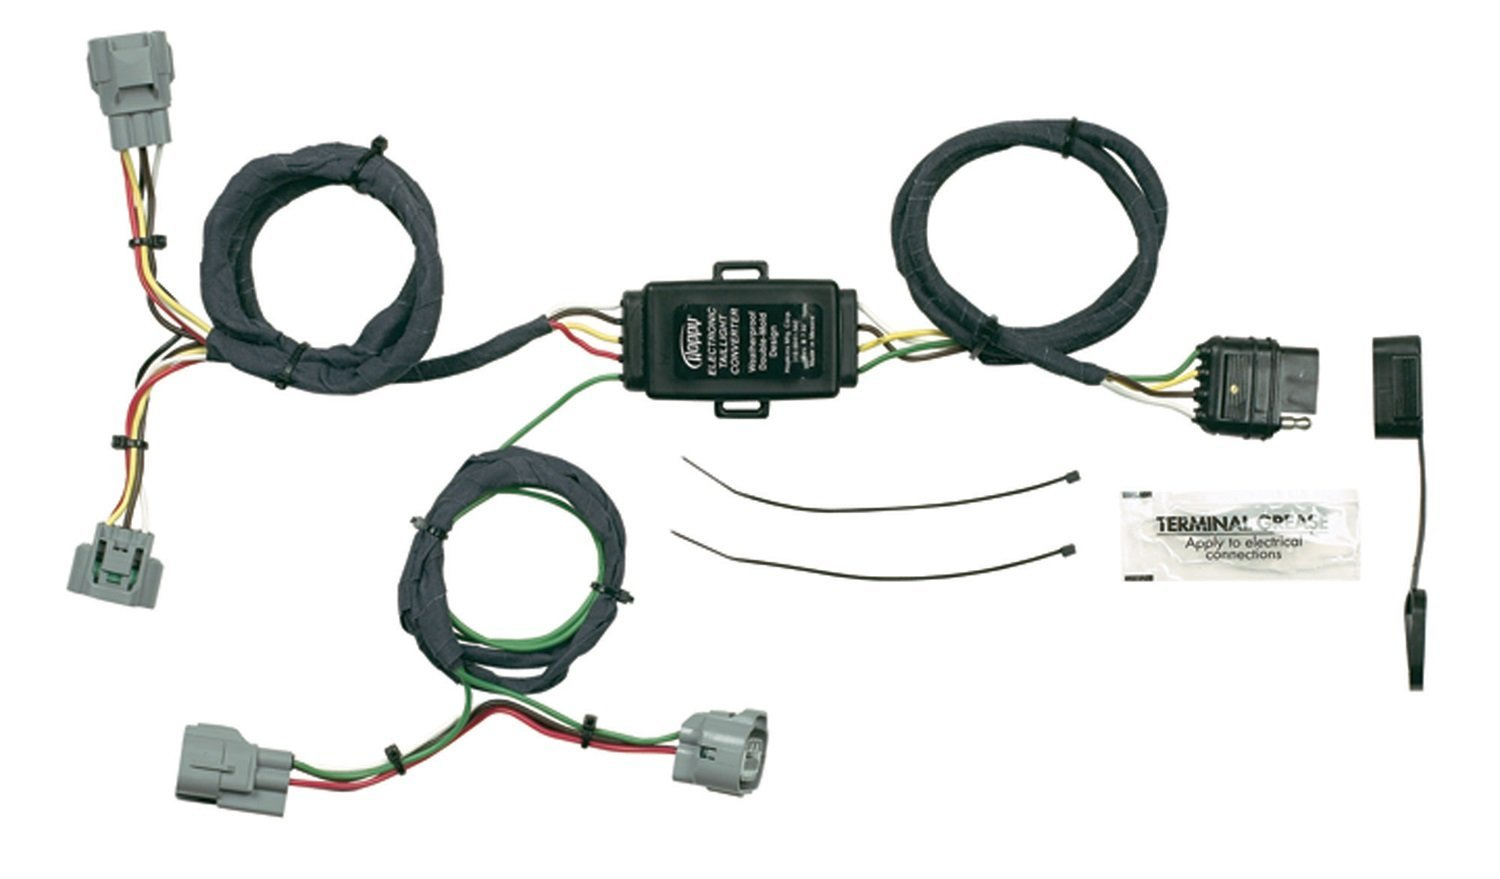 hight resolution of hopkins 43355 plug in simple vehicle wiring kit 43355 connector pioneer car stereo wiring diagram